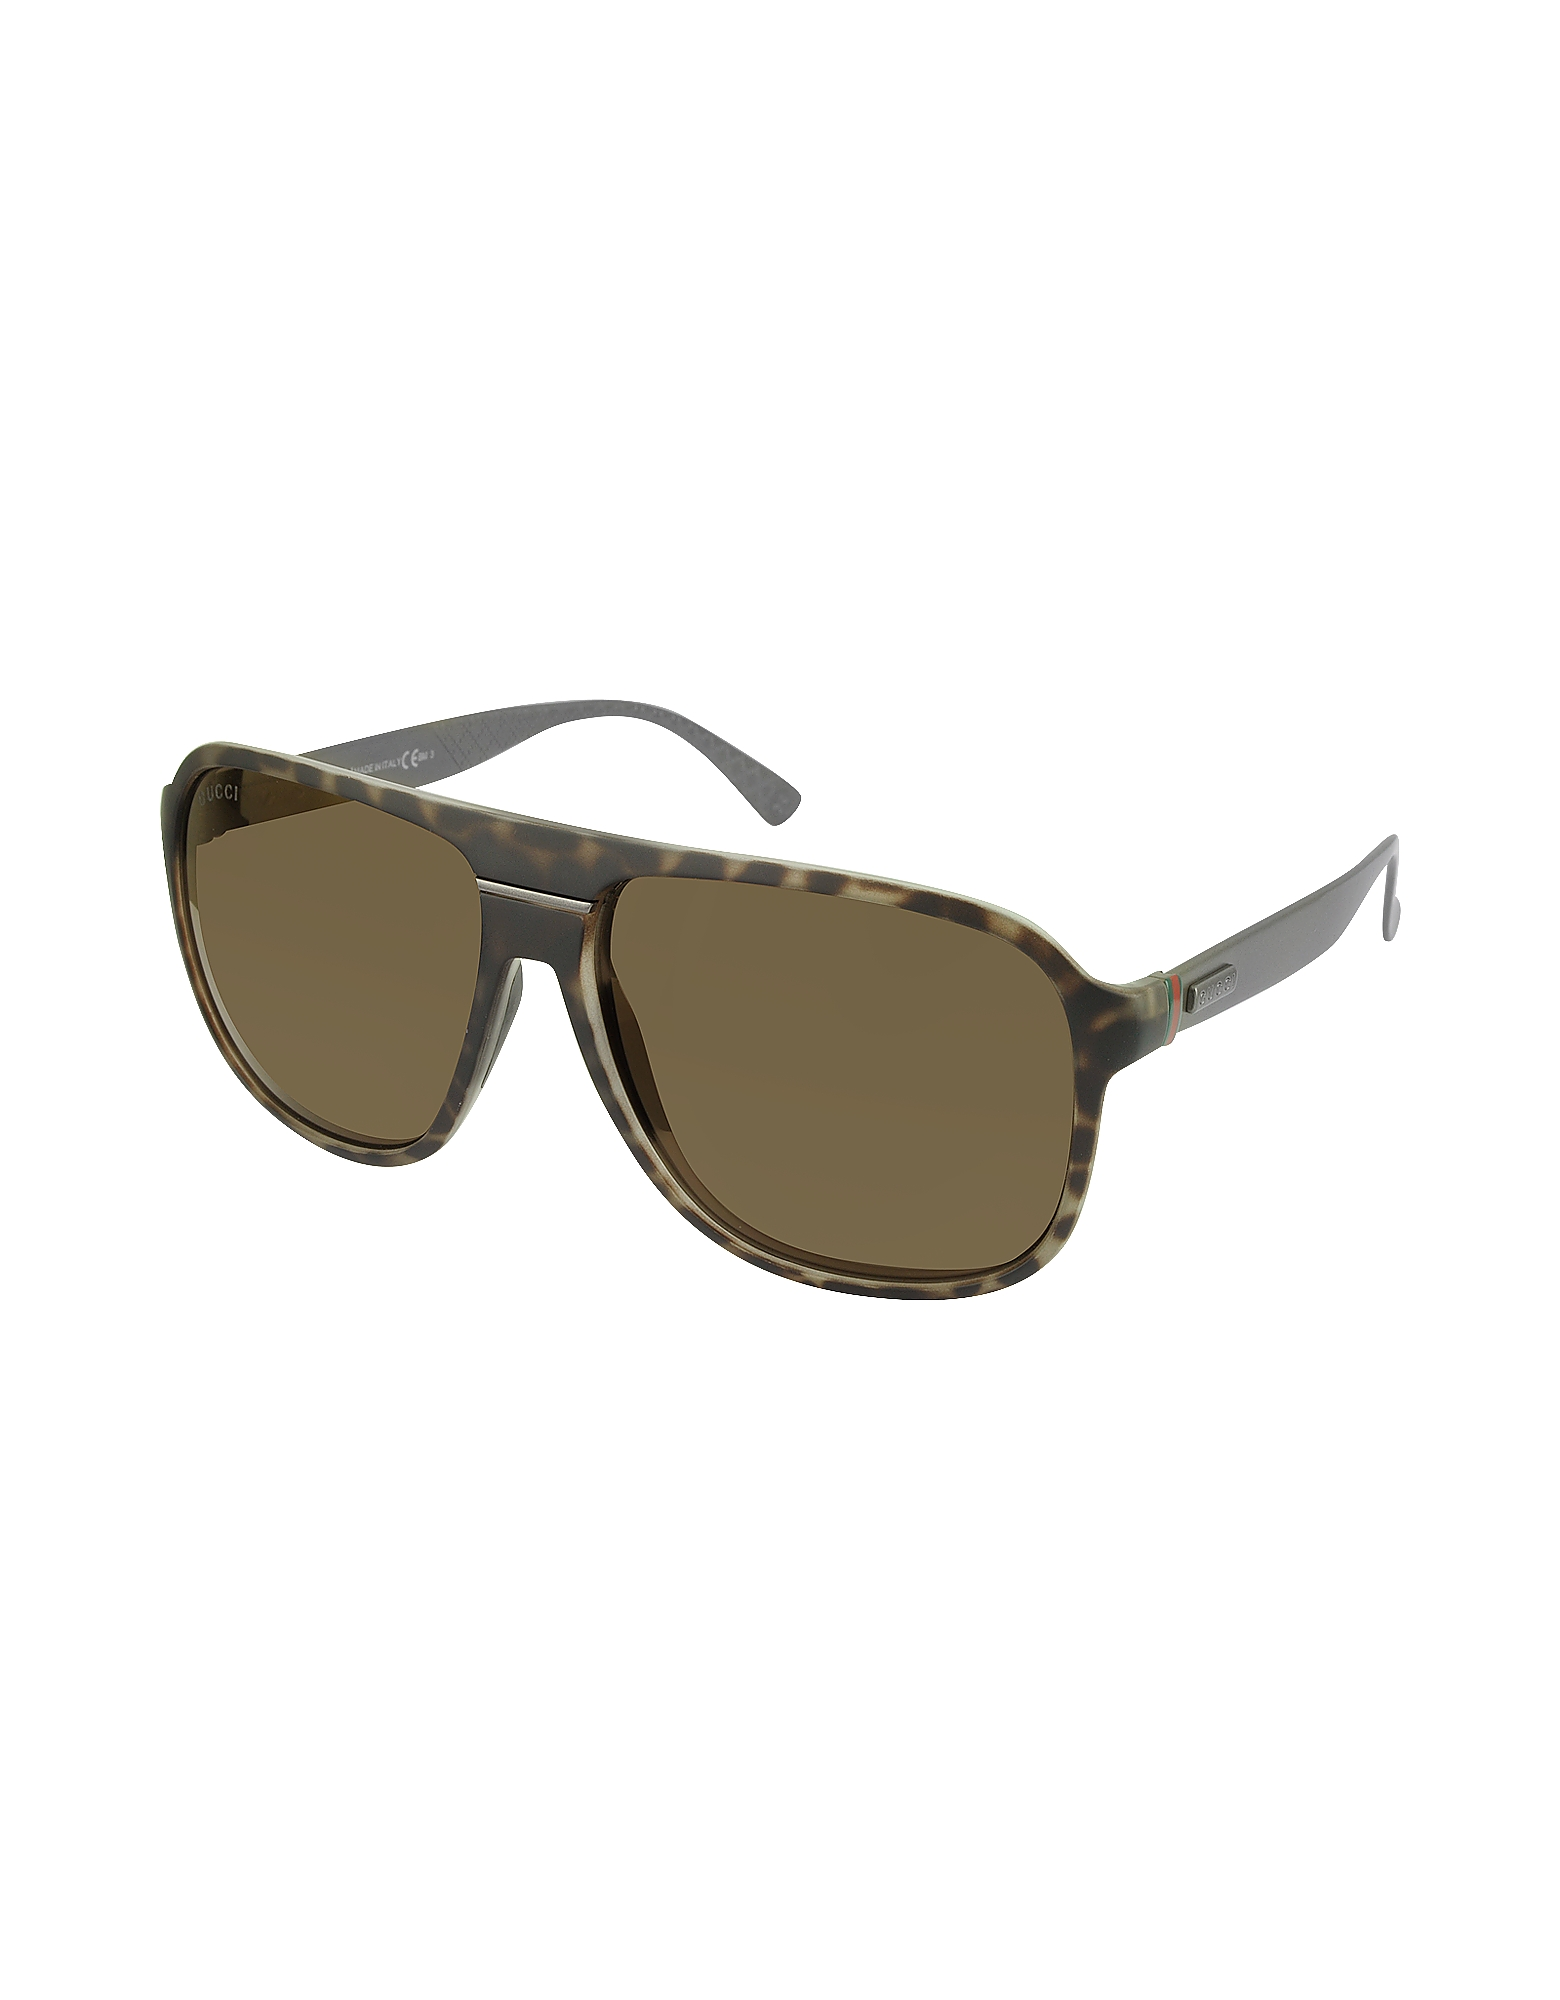 GG 1076/S Aviator Aluminum and Injected Sunglasses от Forzieri.com INT